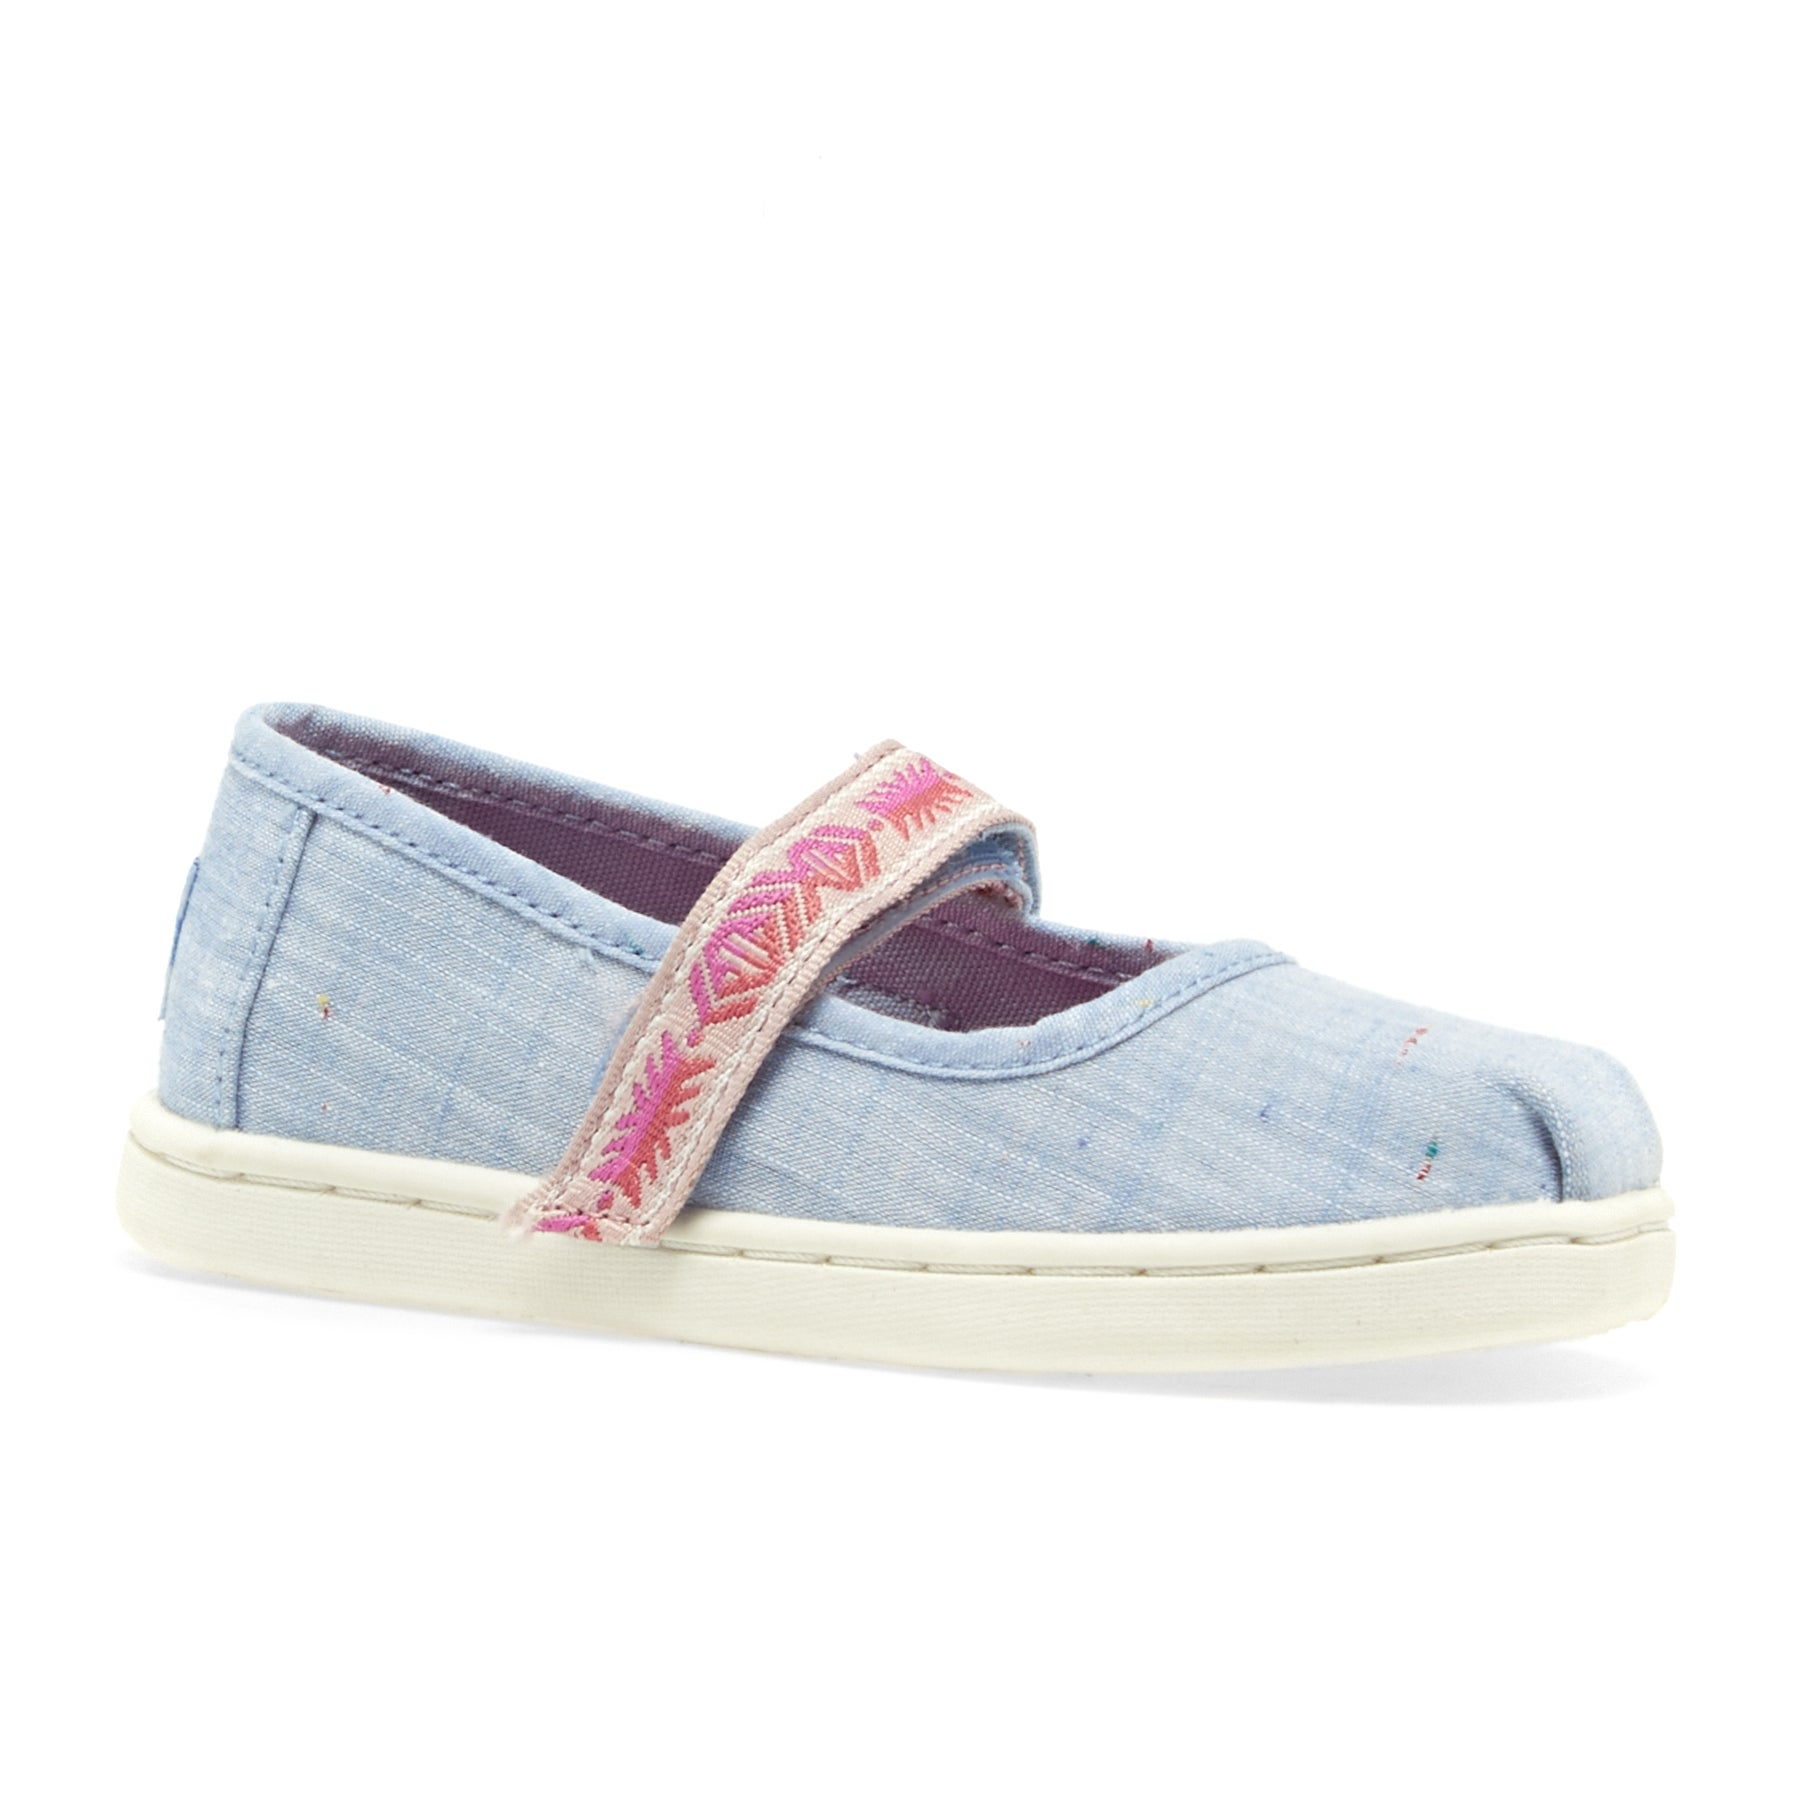 Toms Mary Jane Slip On Shoes - Light Blue